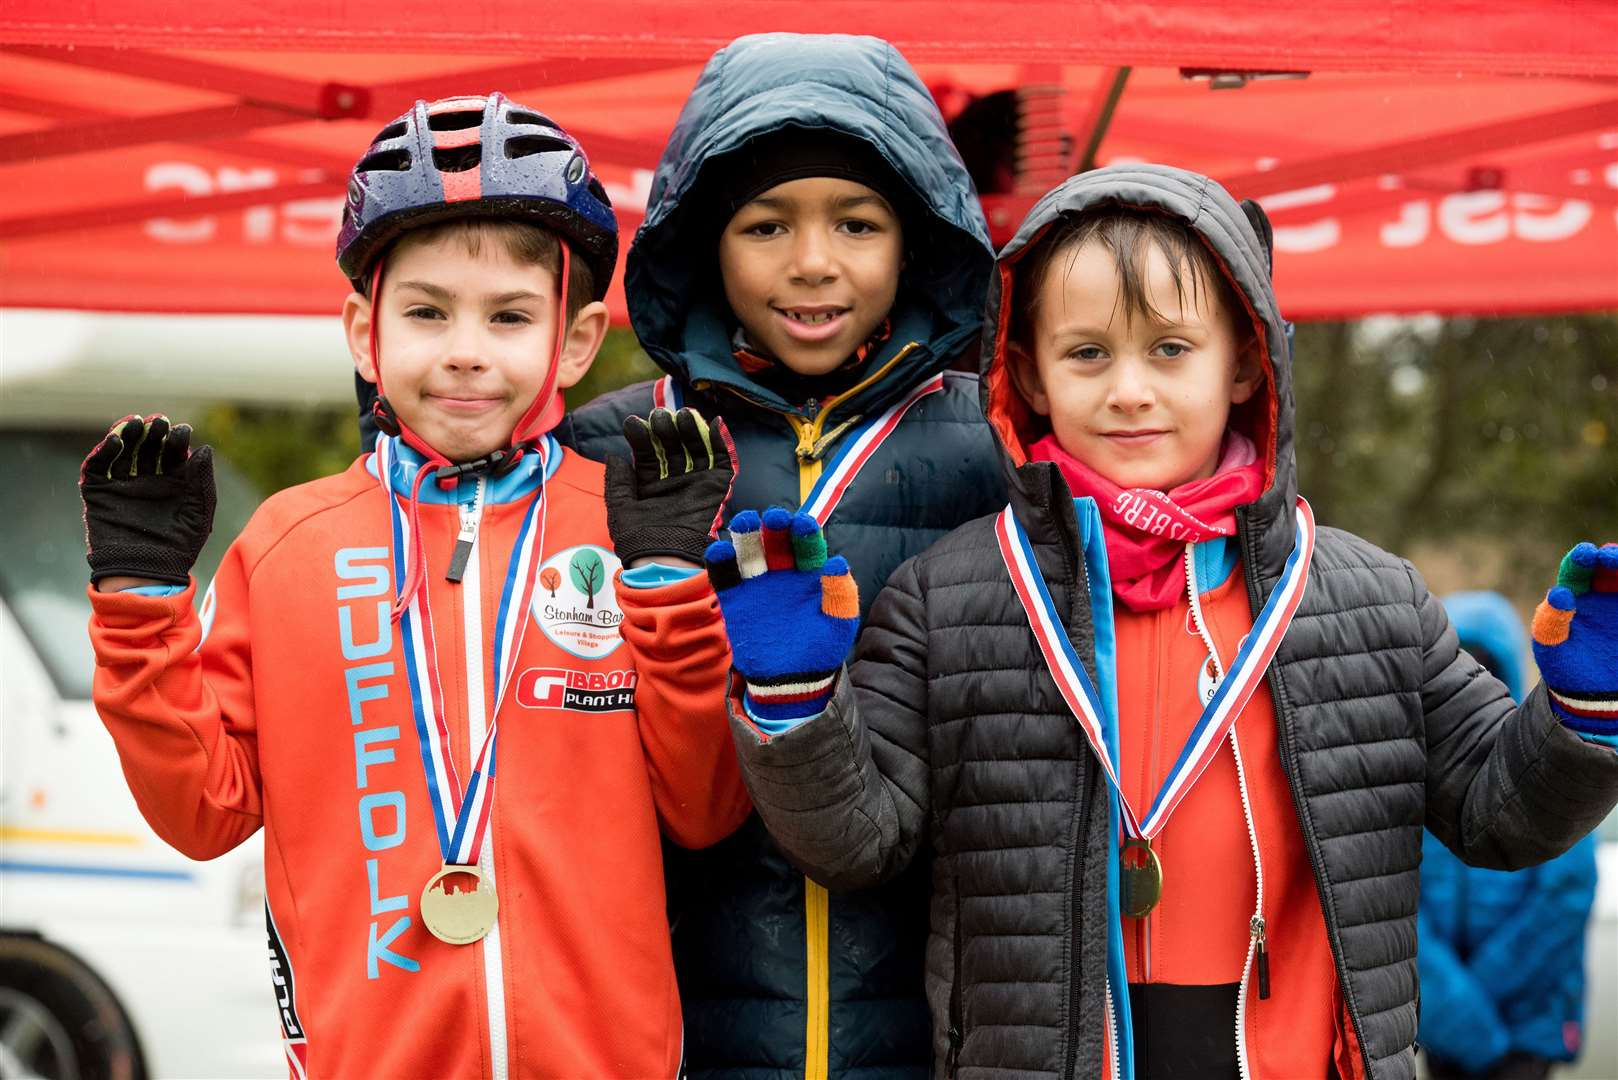 West Suffolk Wheelers will be holding Round 7 of the Eastern Cyclo-Cross League on Saturday 2nd November 2019 at West Stow Country Park. Junior winners. Boys under 14 Picture by Mark Westley. (21005088)